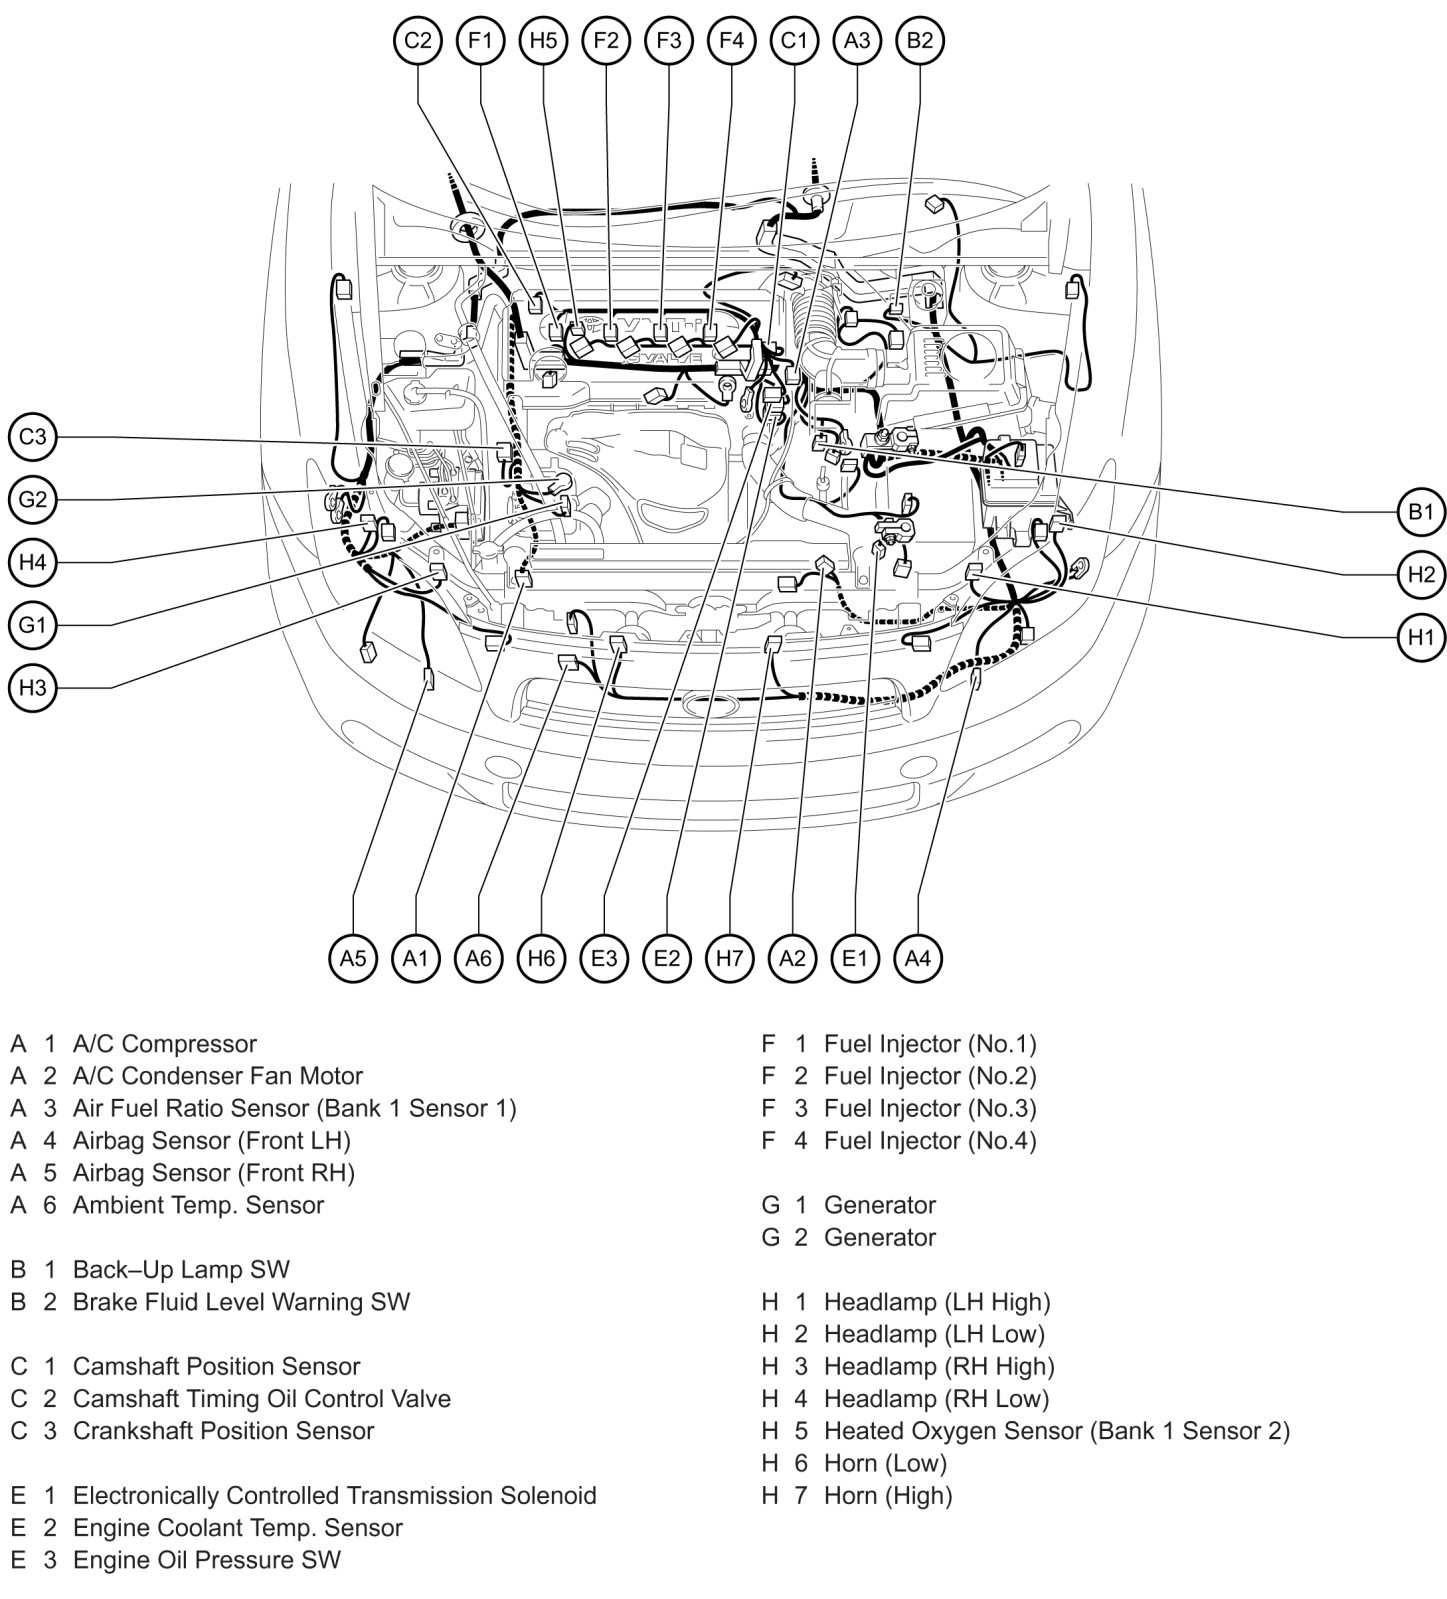 2008 Highlander Wiring Diagram